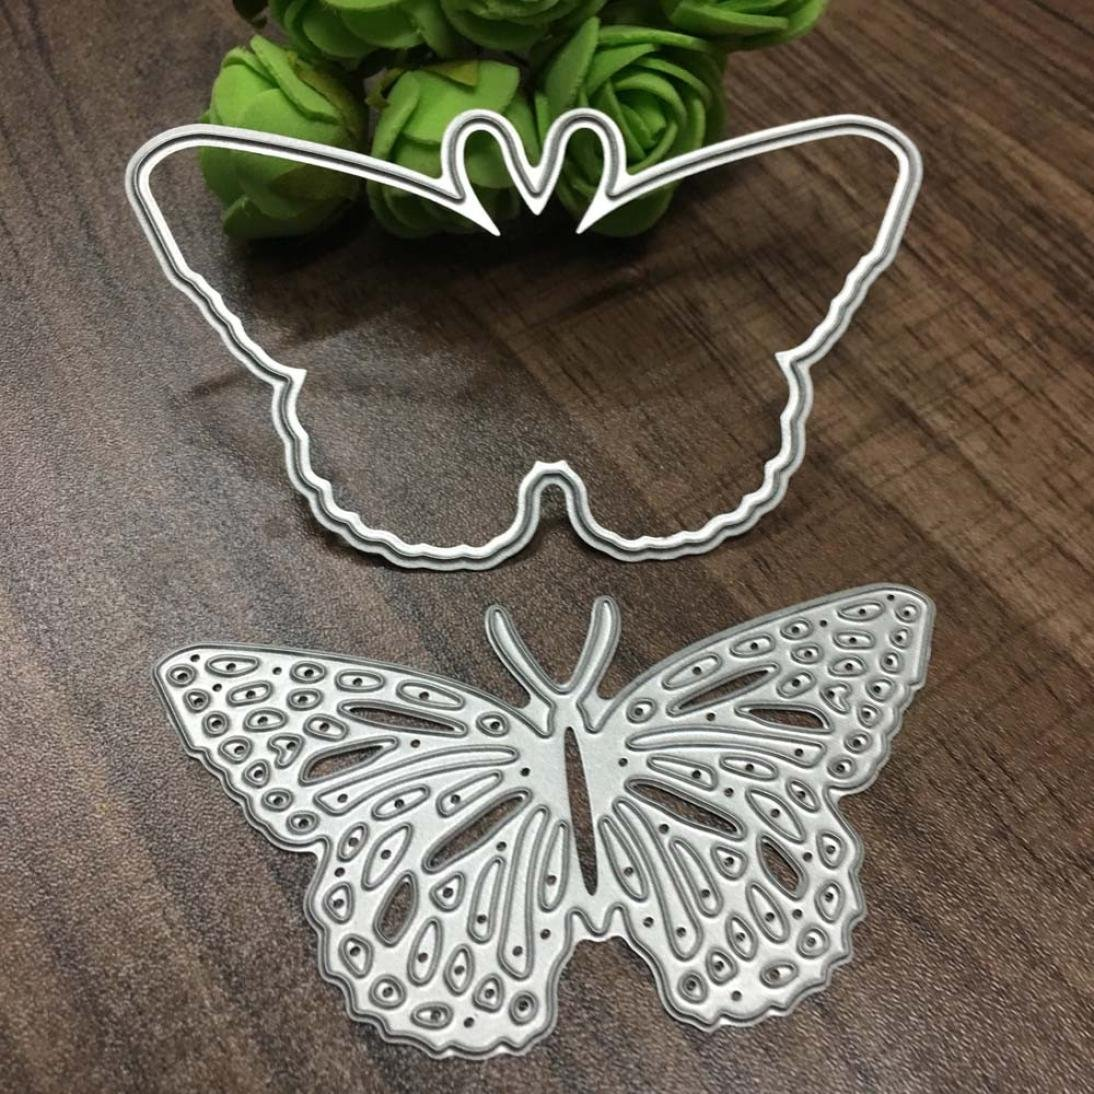 Clearance!VESNIBA Christmas Metal Dies Cutting Die for Cards Making Butterfly Embossing Stencils for DIY Craft by VESNIBA (Image #3)